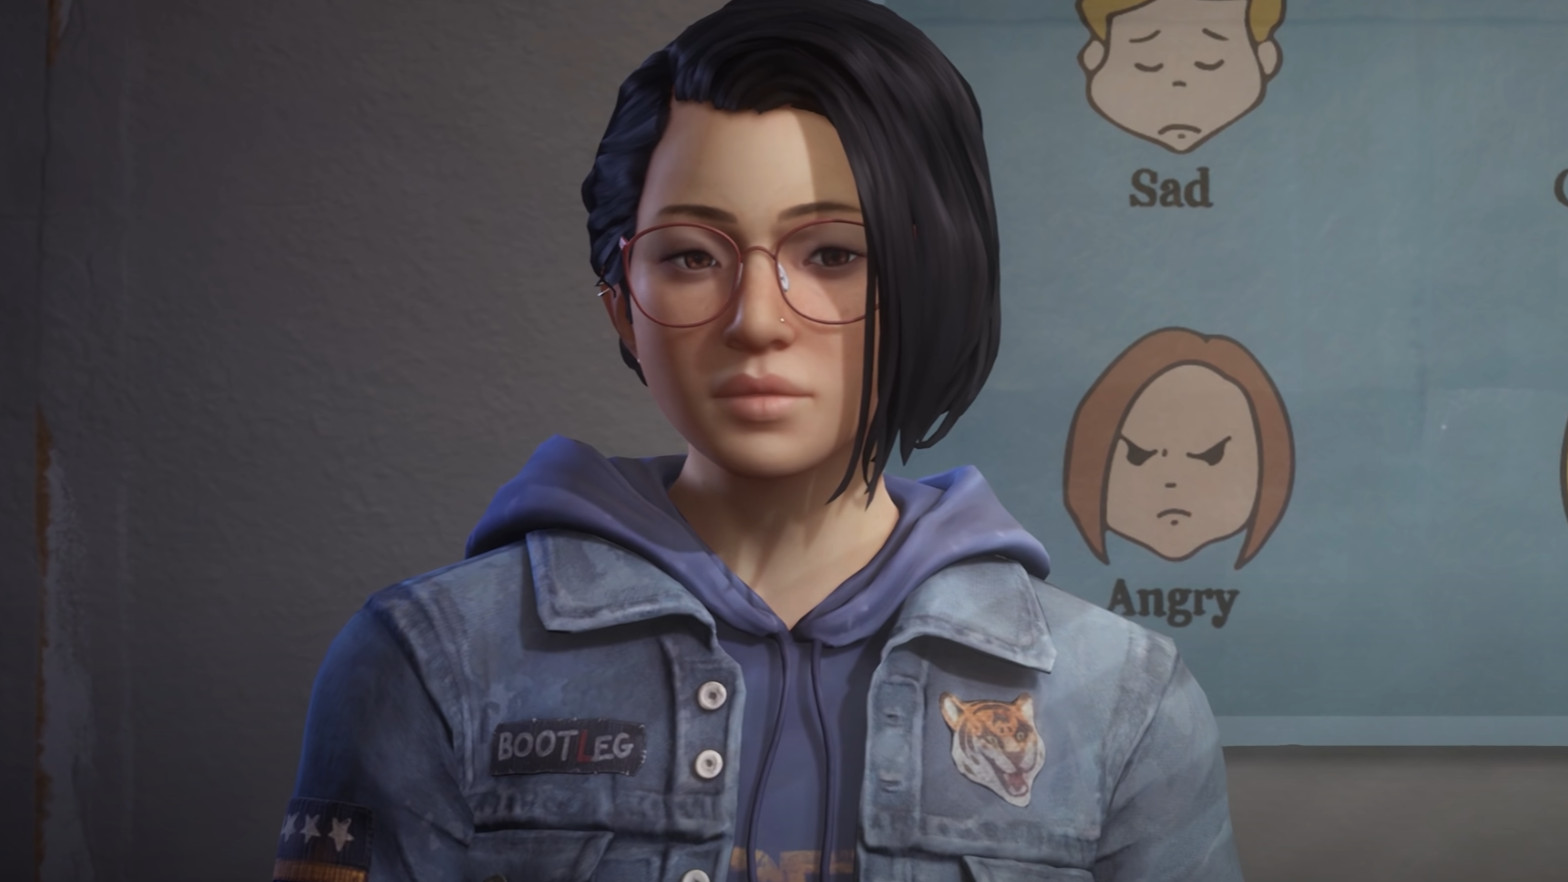 Life Is Strange: True Colors' protagonist Alex looks at the camera.